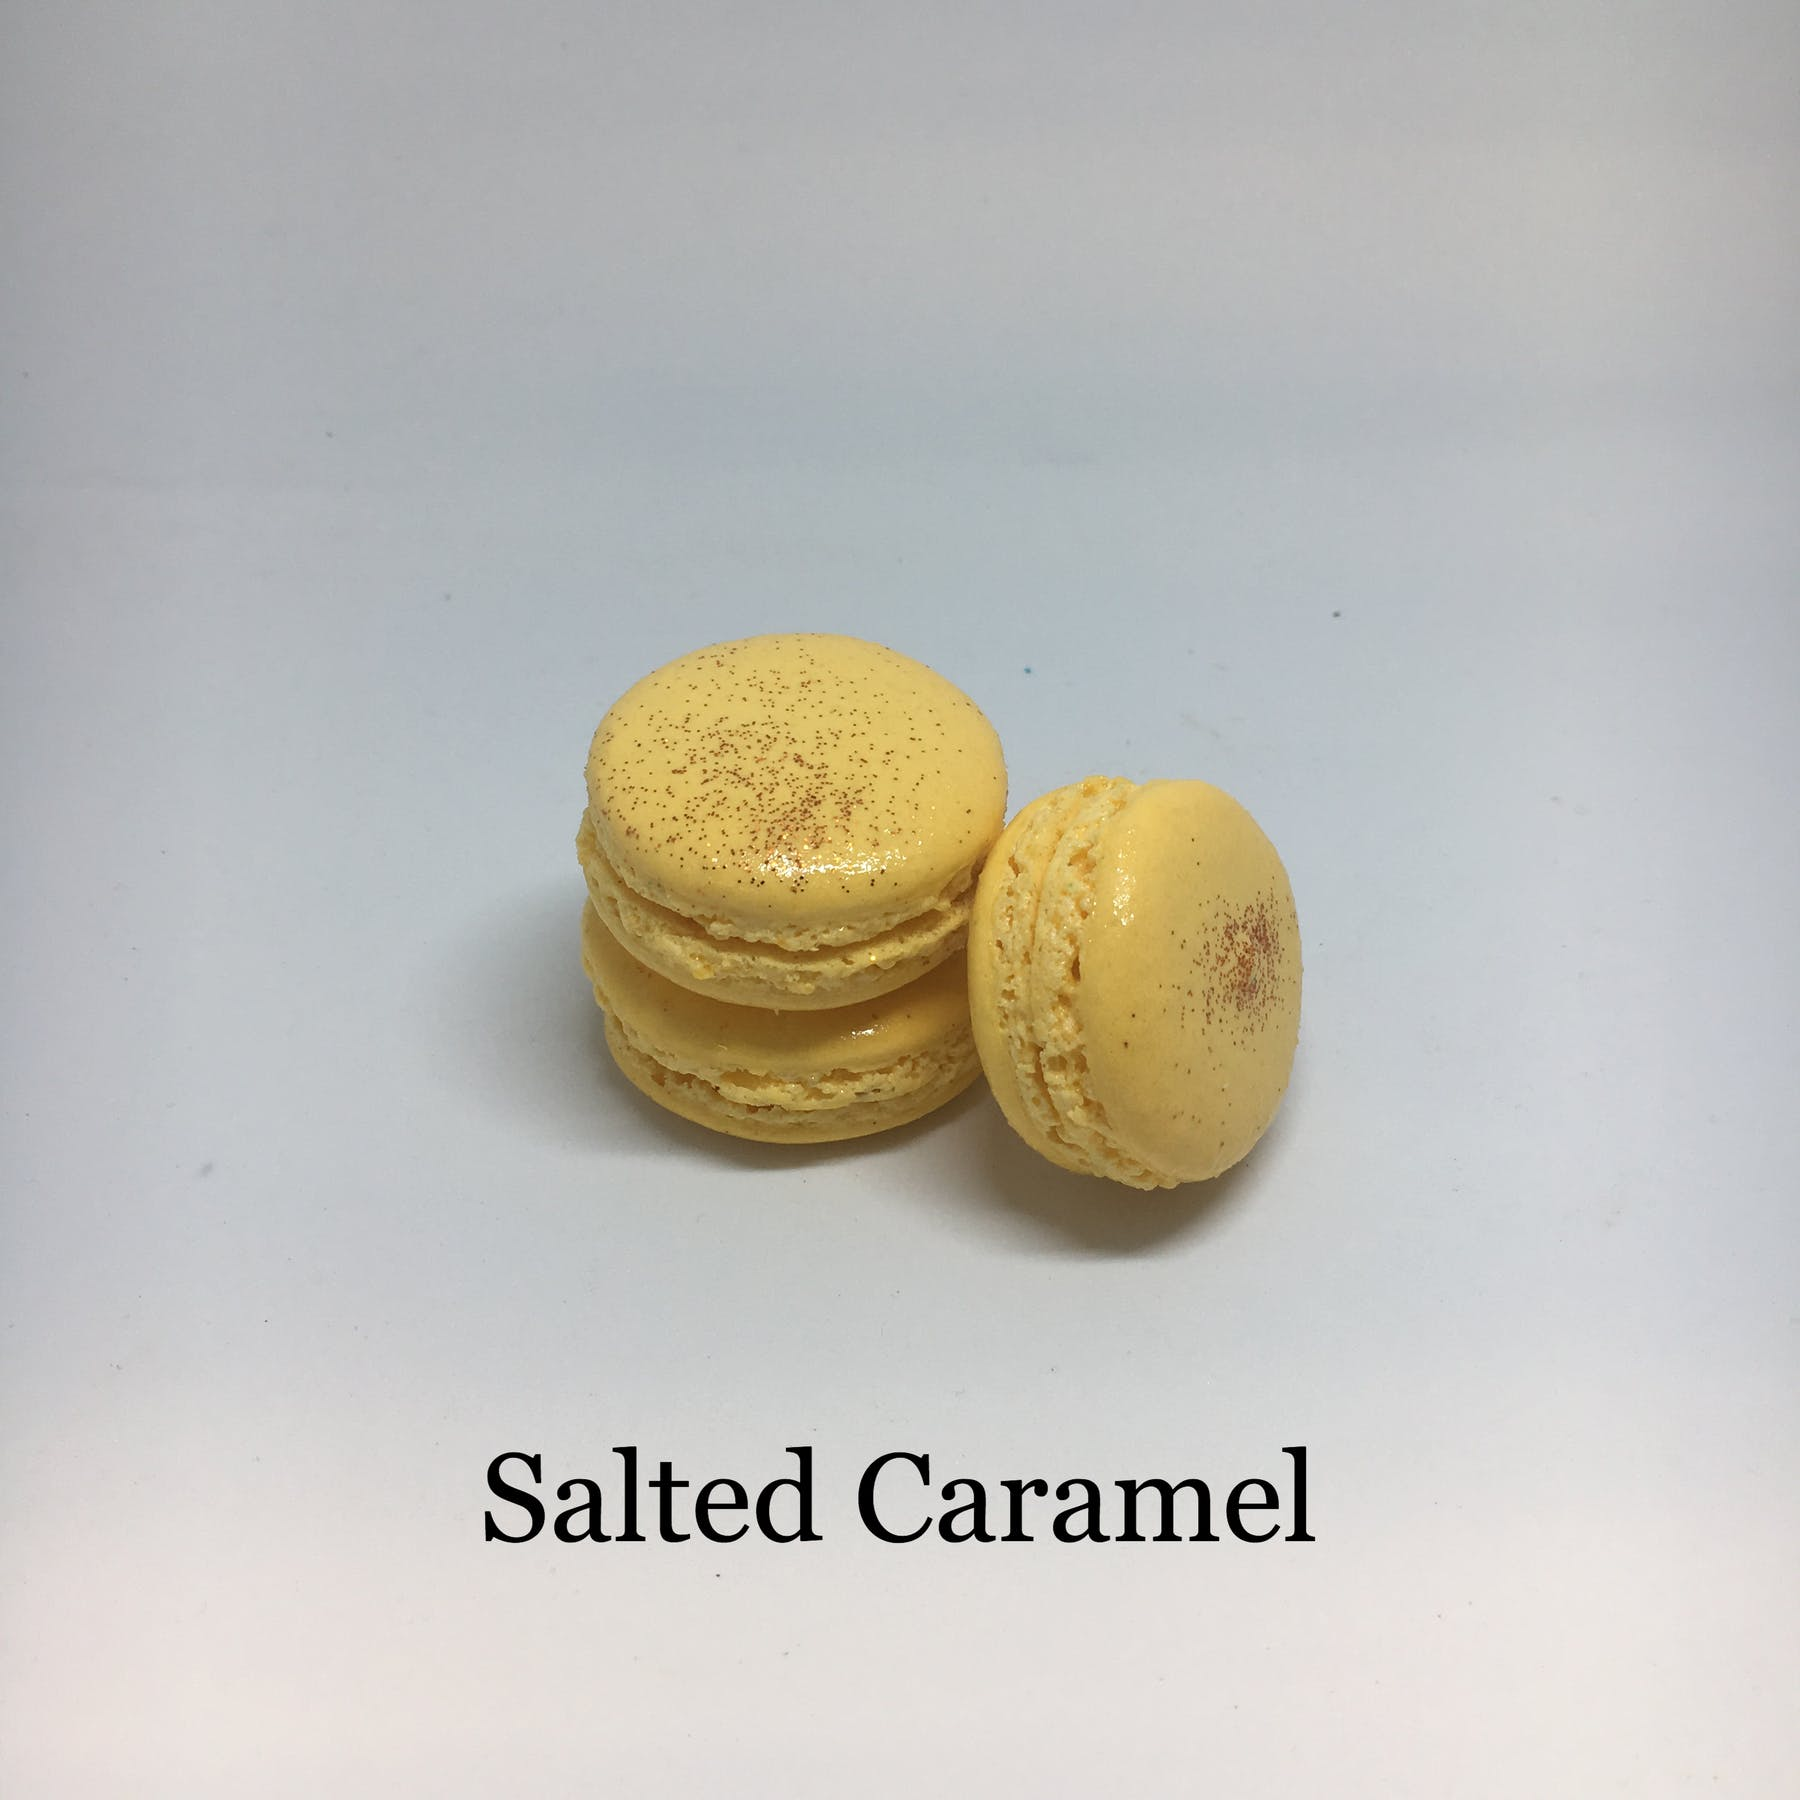 salted caramel flavored macarons